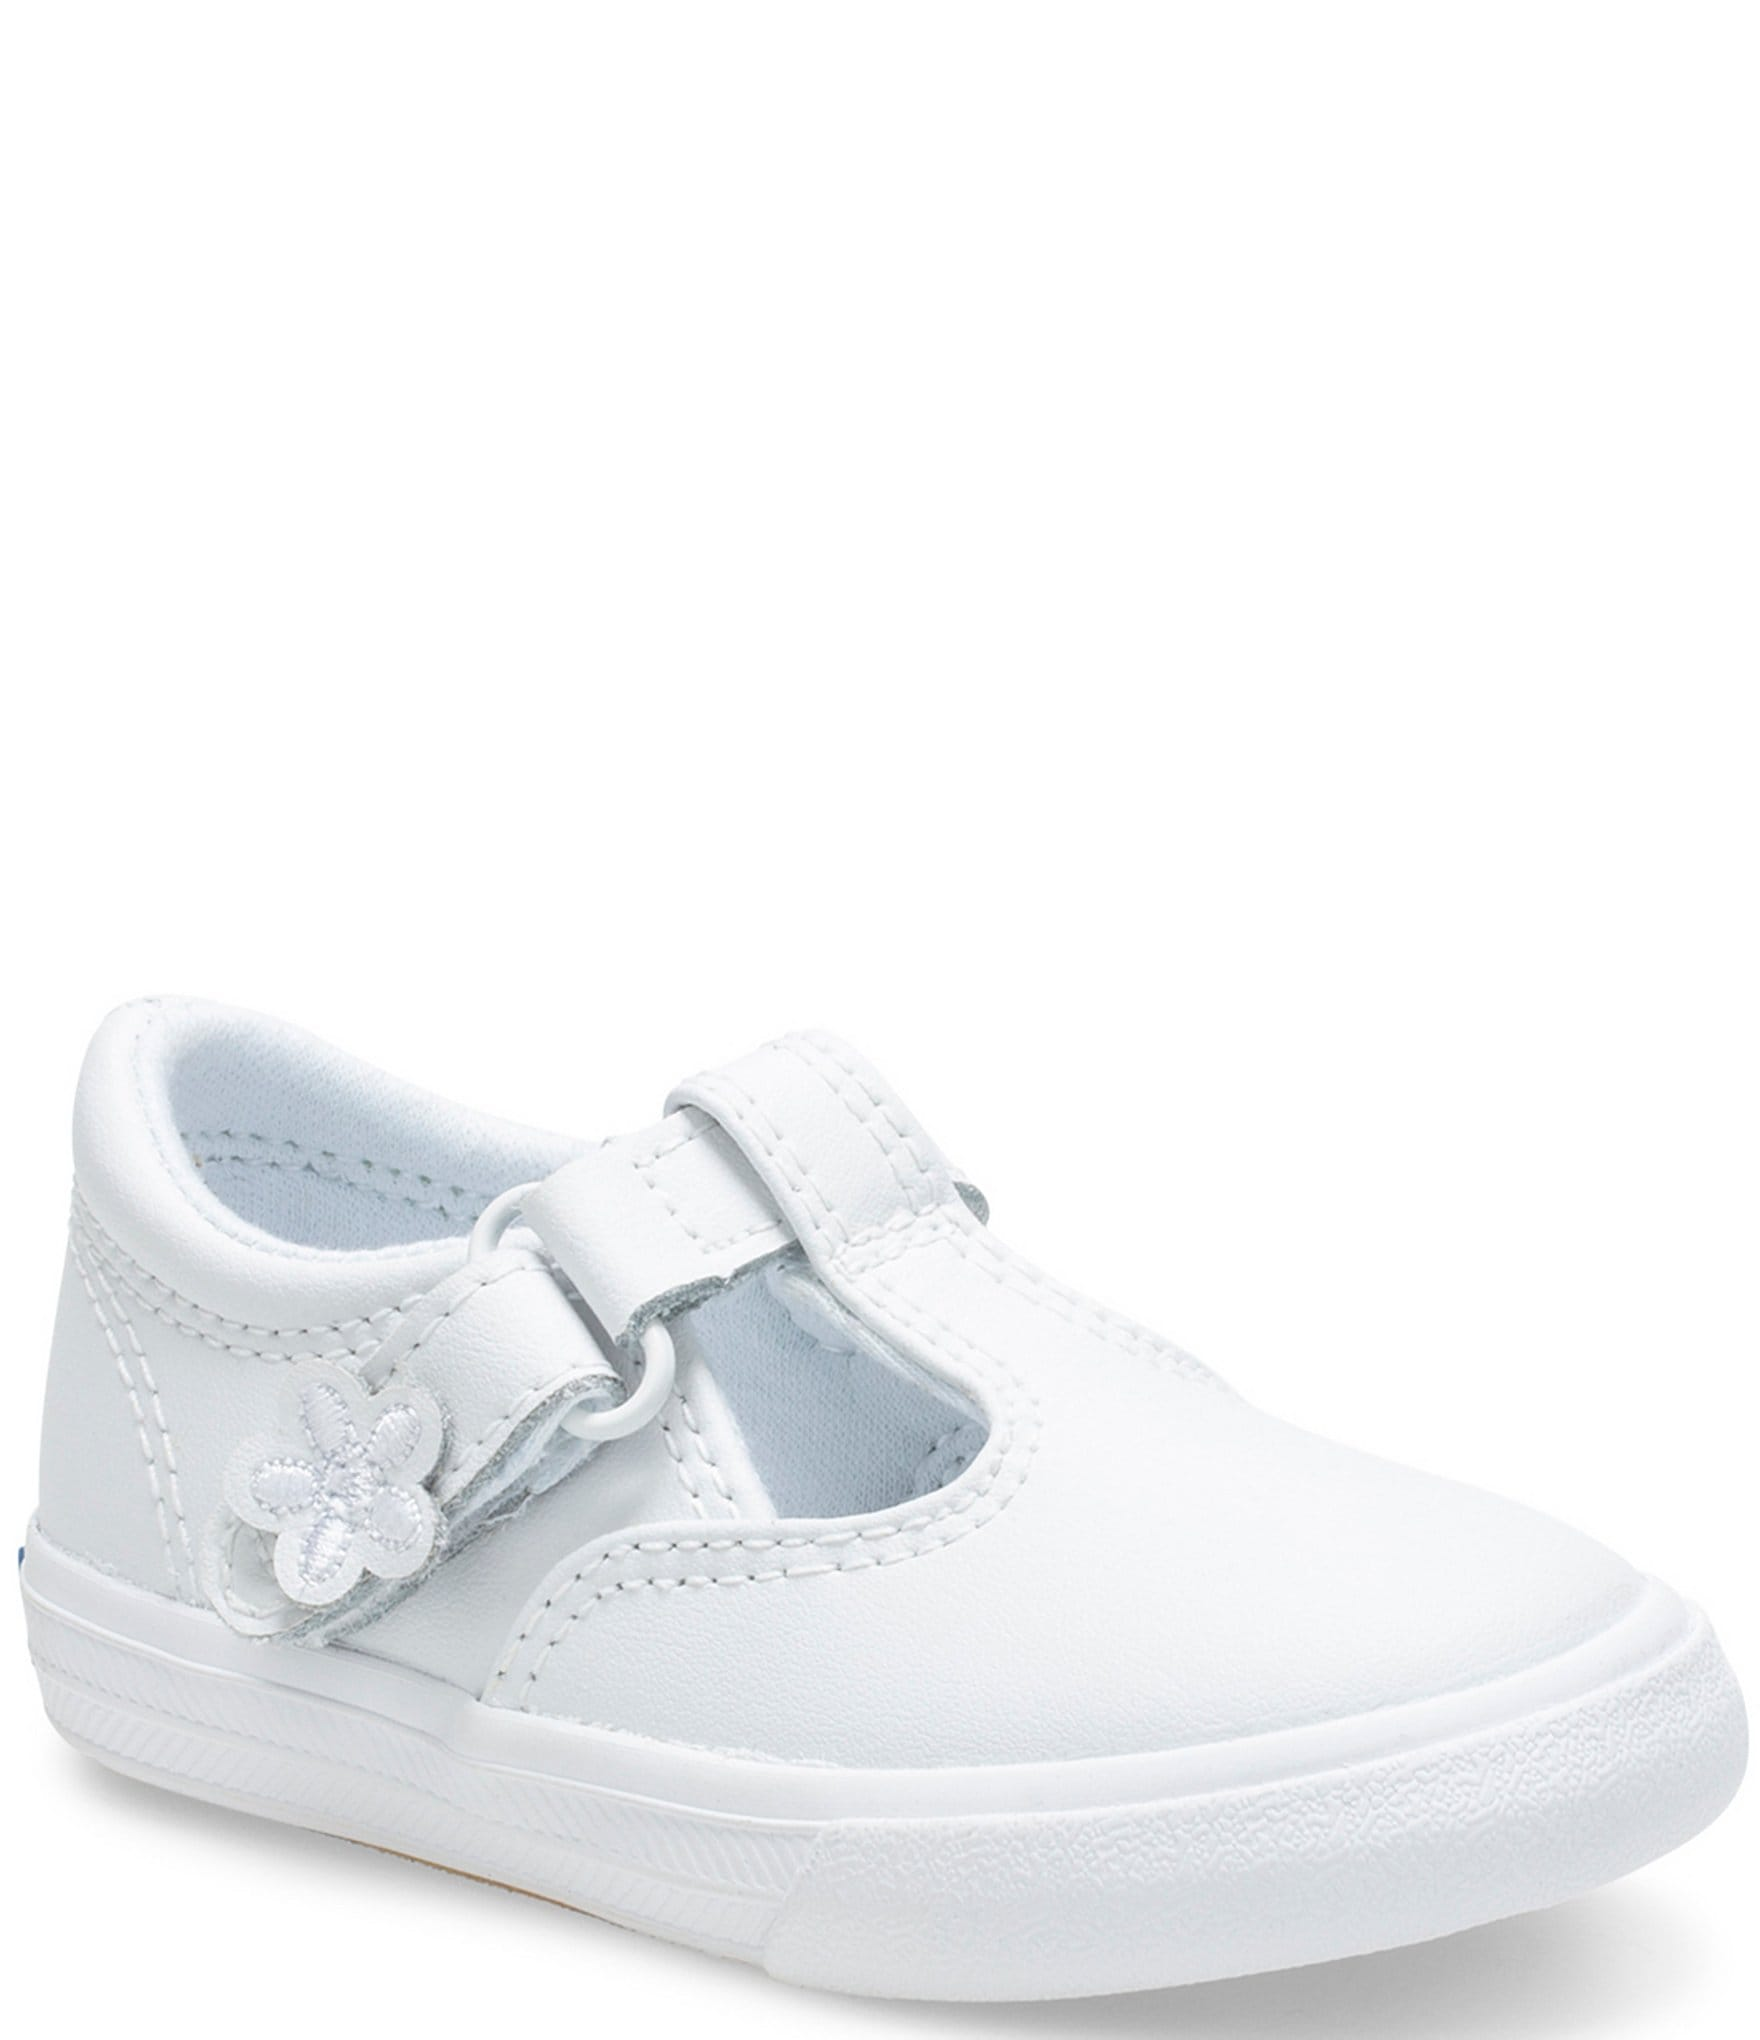 White Tennis Shoes For Baby Girl Style Guru Fashion